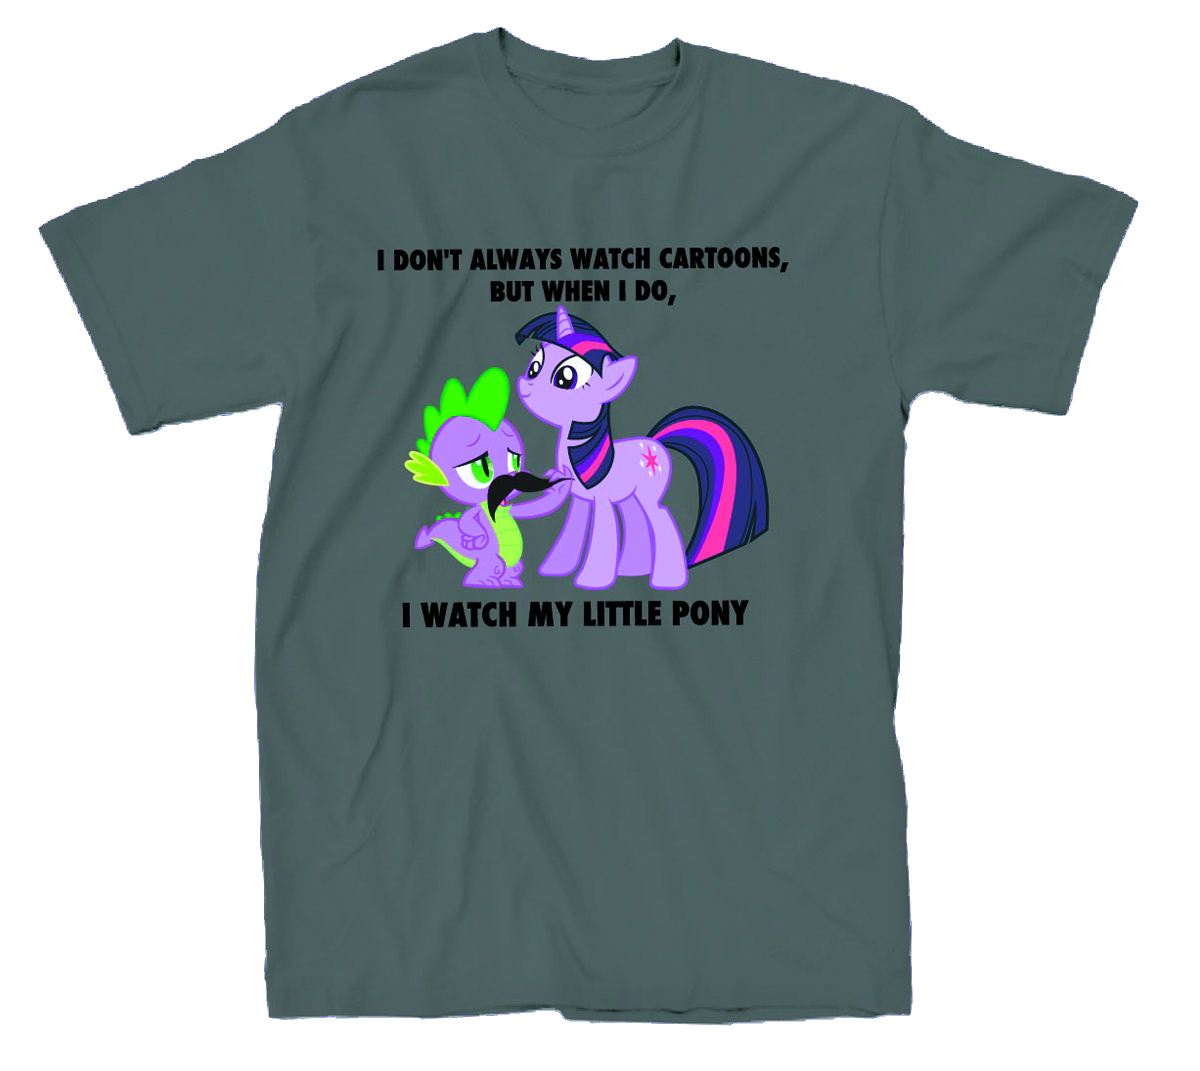 MY LITTLE PONY I WATCH MLP CHARCOAL PX T/S LG